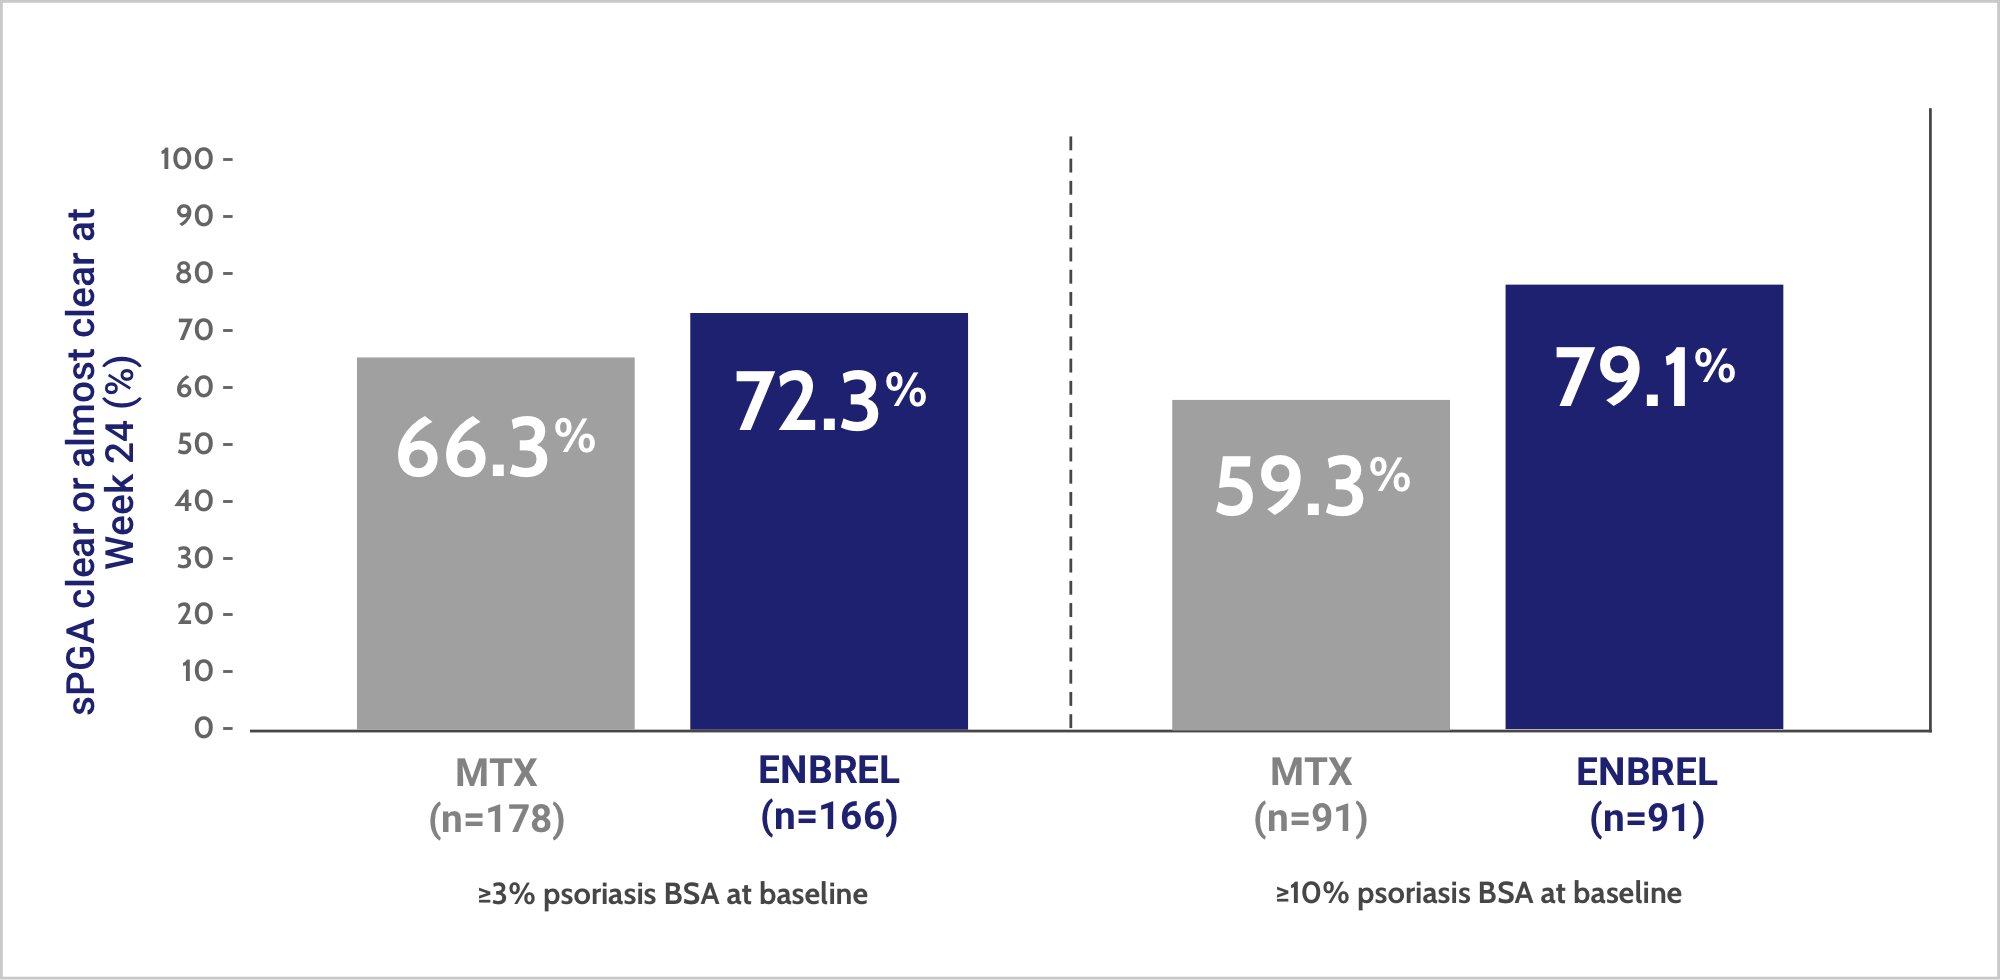 8 out of 10 patients on ENBREL achieved sPGA of clear to almost clear at Week 24